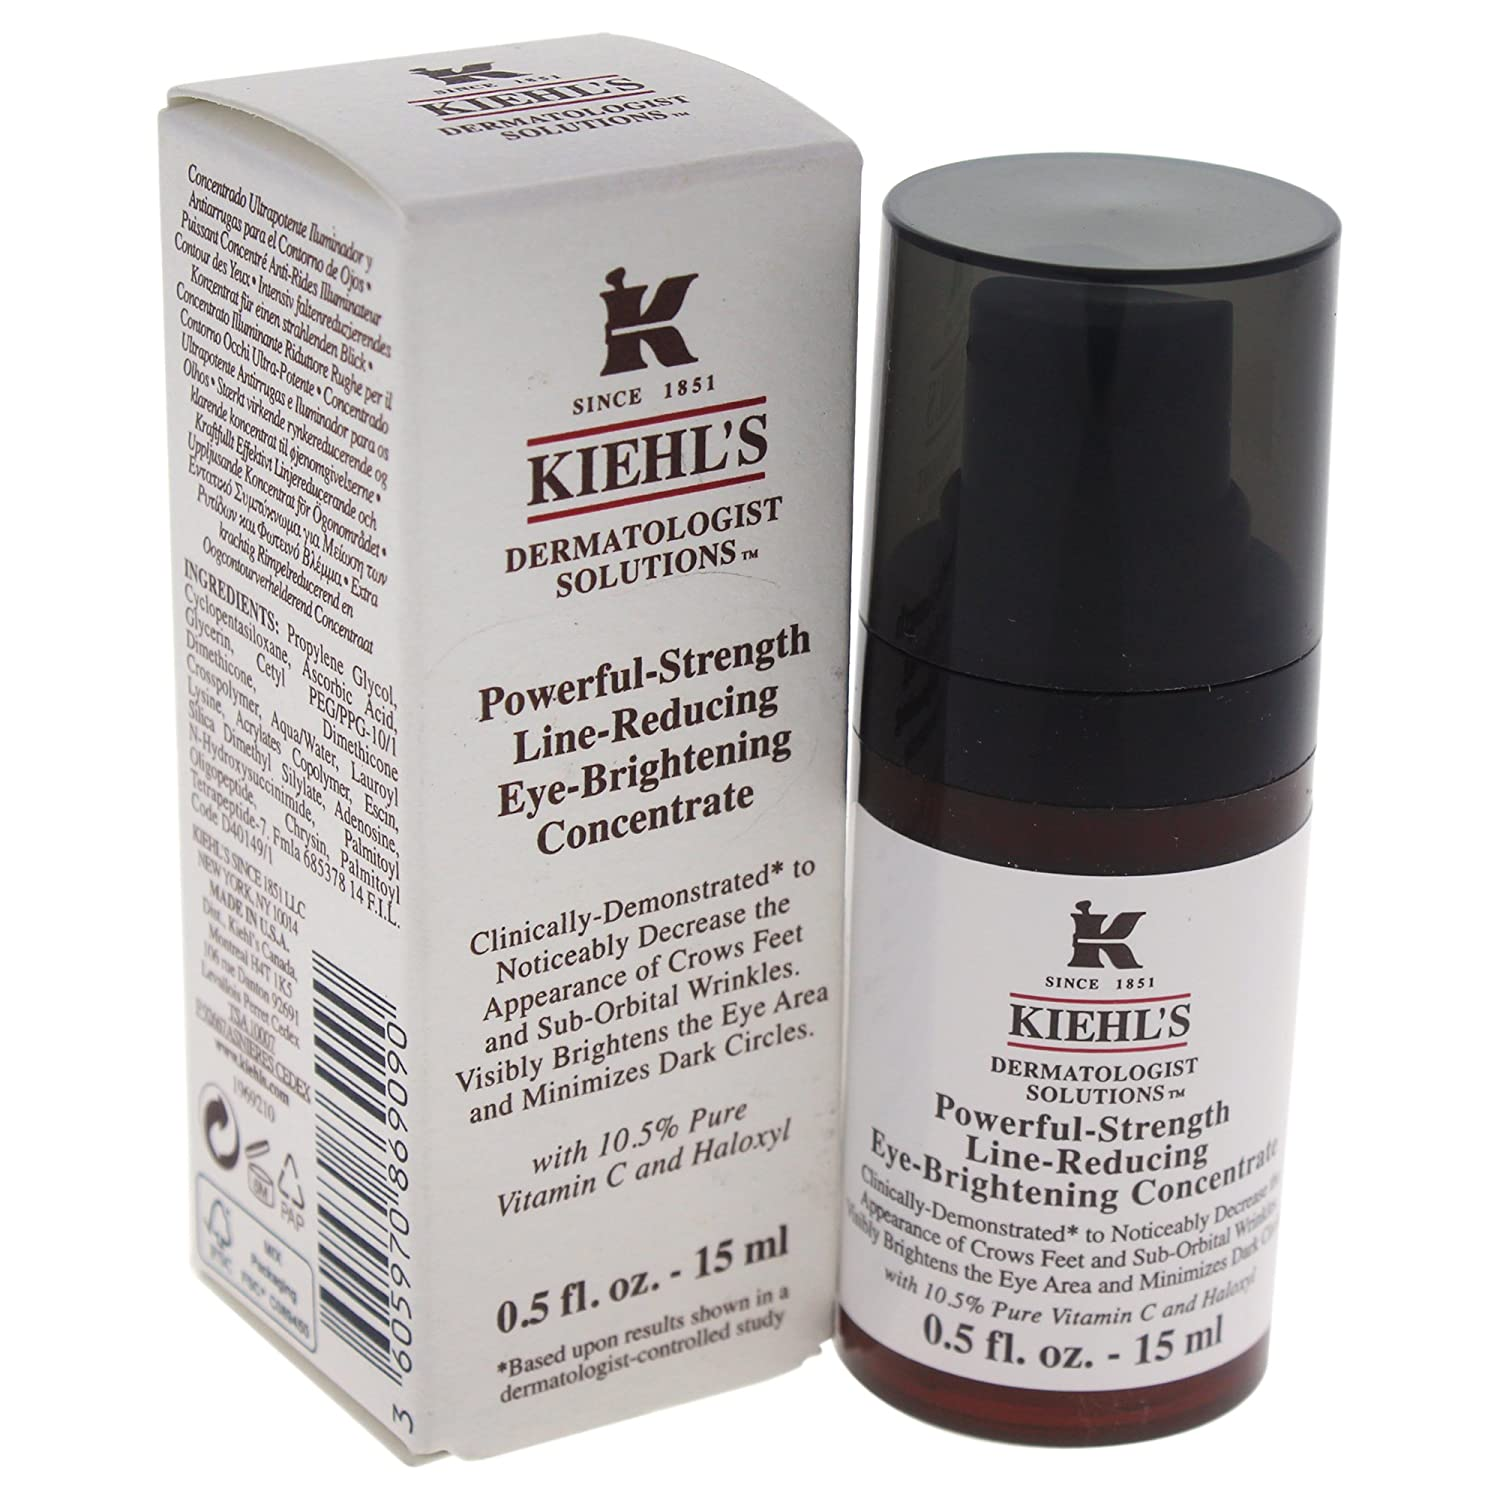 Kiehl's Powerful Strength Line Reducing Eye Brightening Concentrate 15ml/0.5oz Kiehl' s 3605970869090